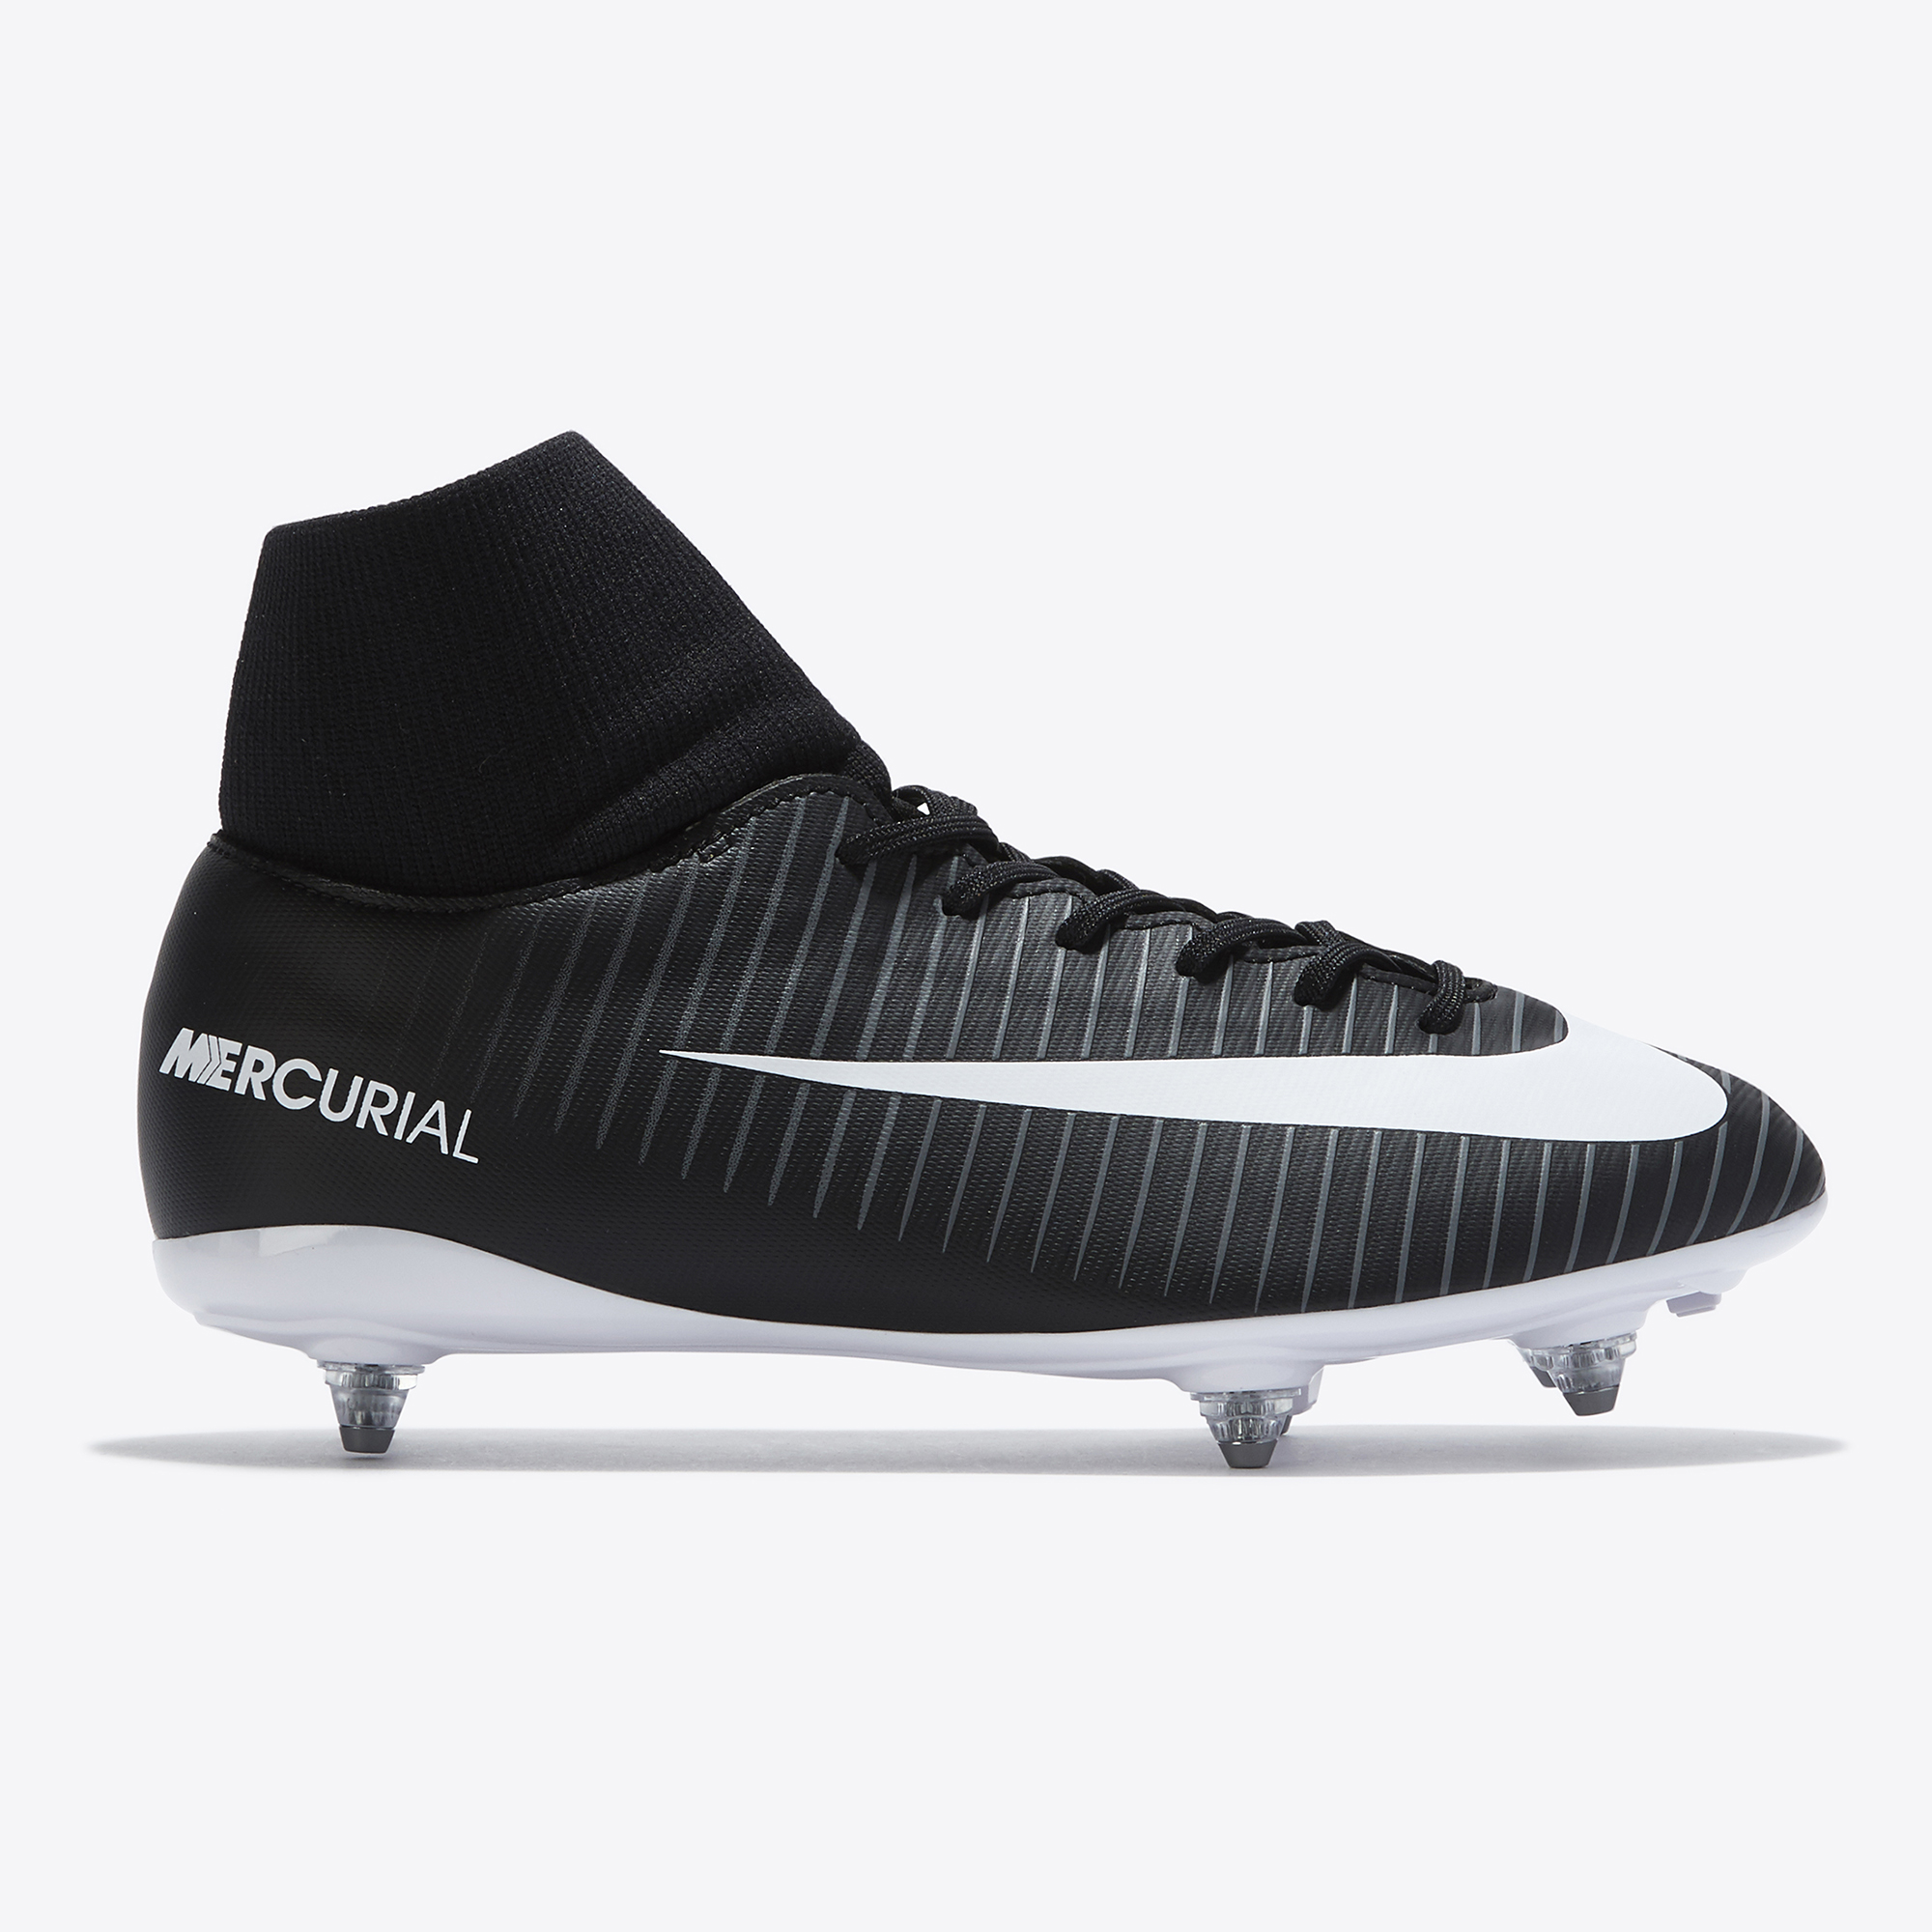 Nike Mercurial Victory VI Dynamic Fit Soft Ground Football Boots - Bla